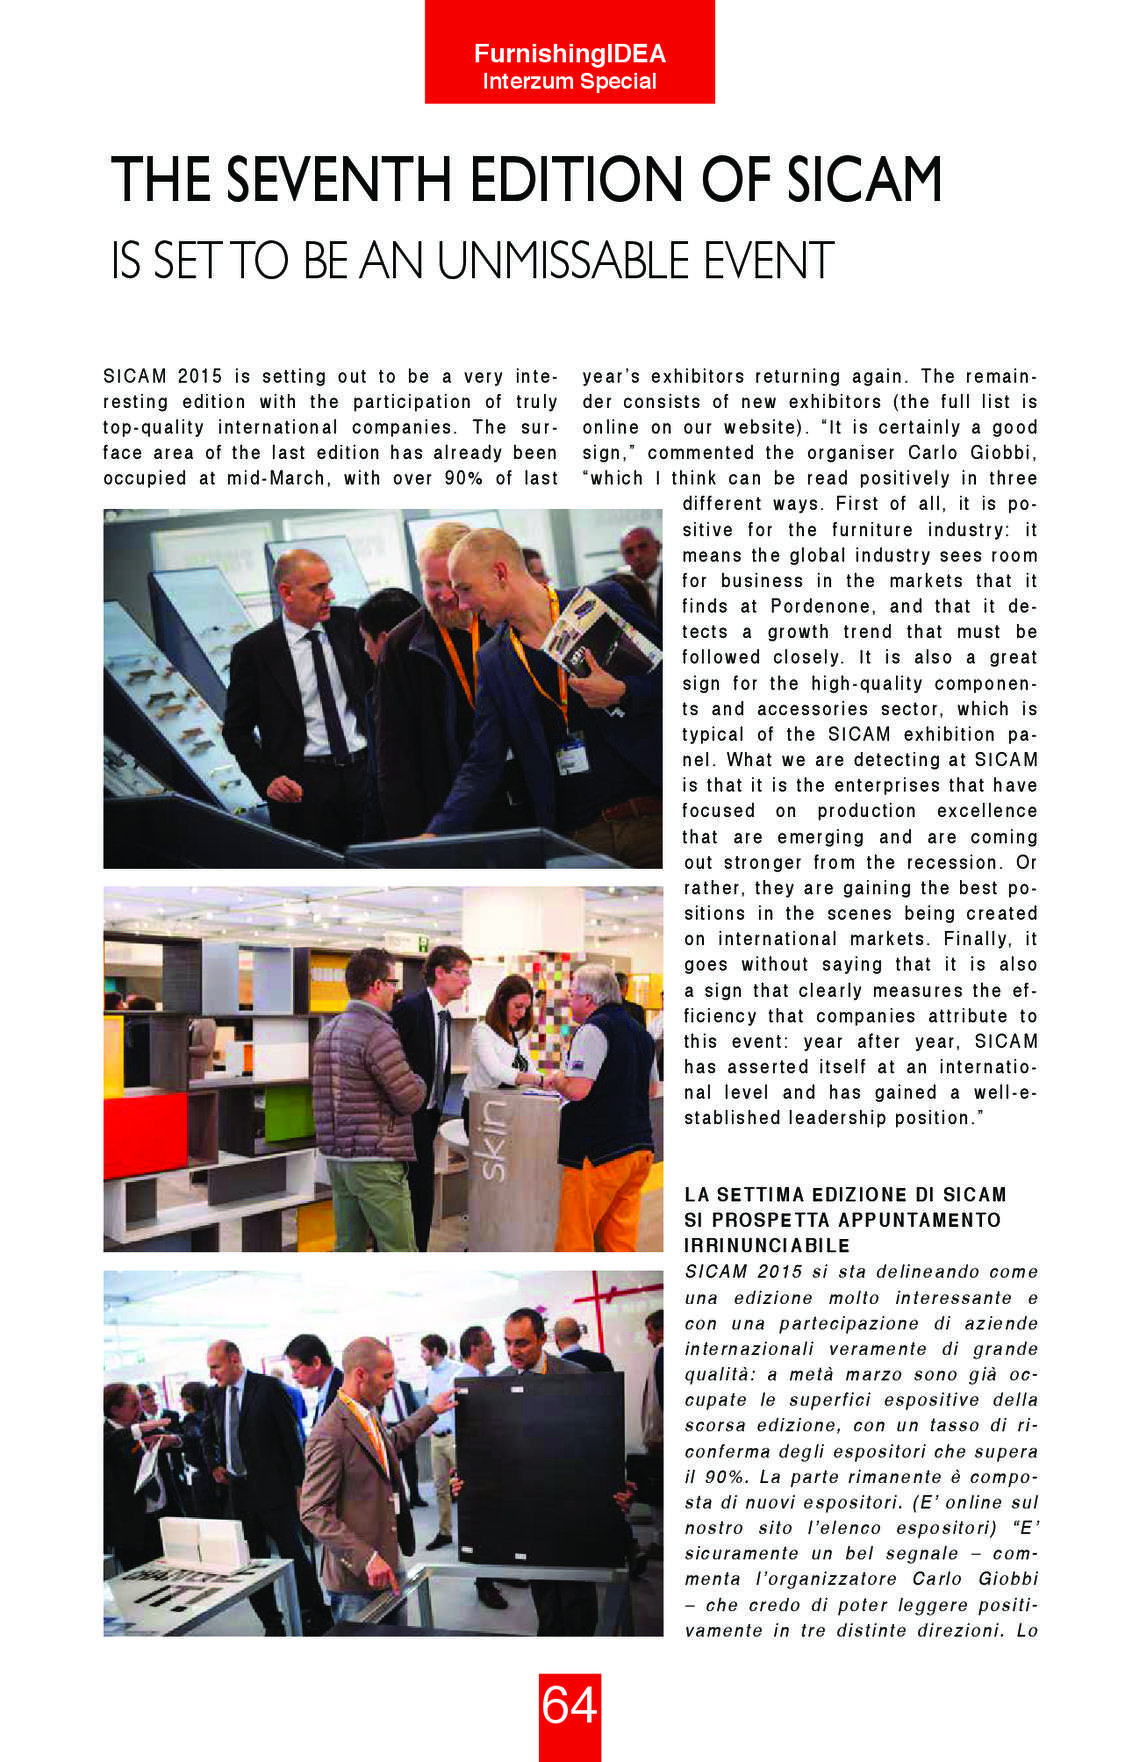 interzum-2015_journal_0_063.jpg